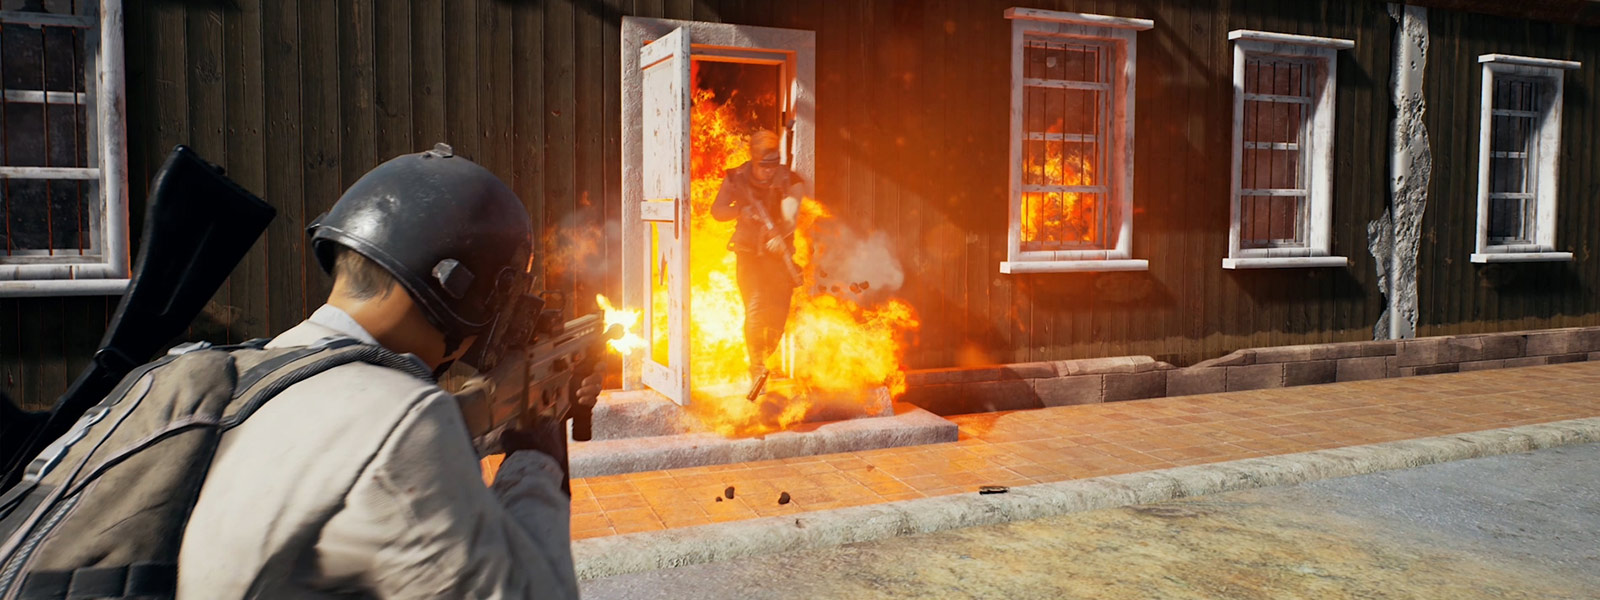 Player running out of burning building while another player is shooting at him